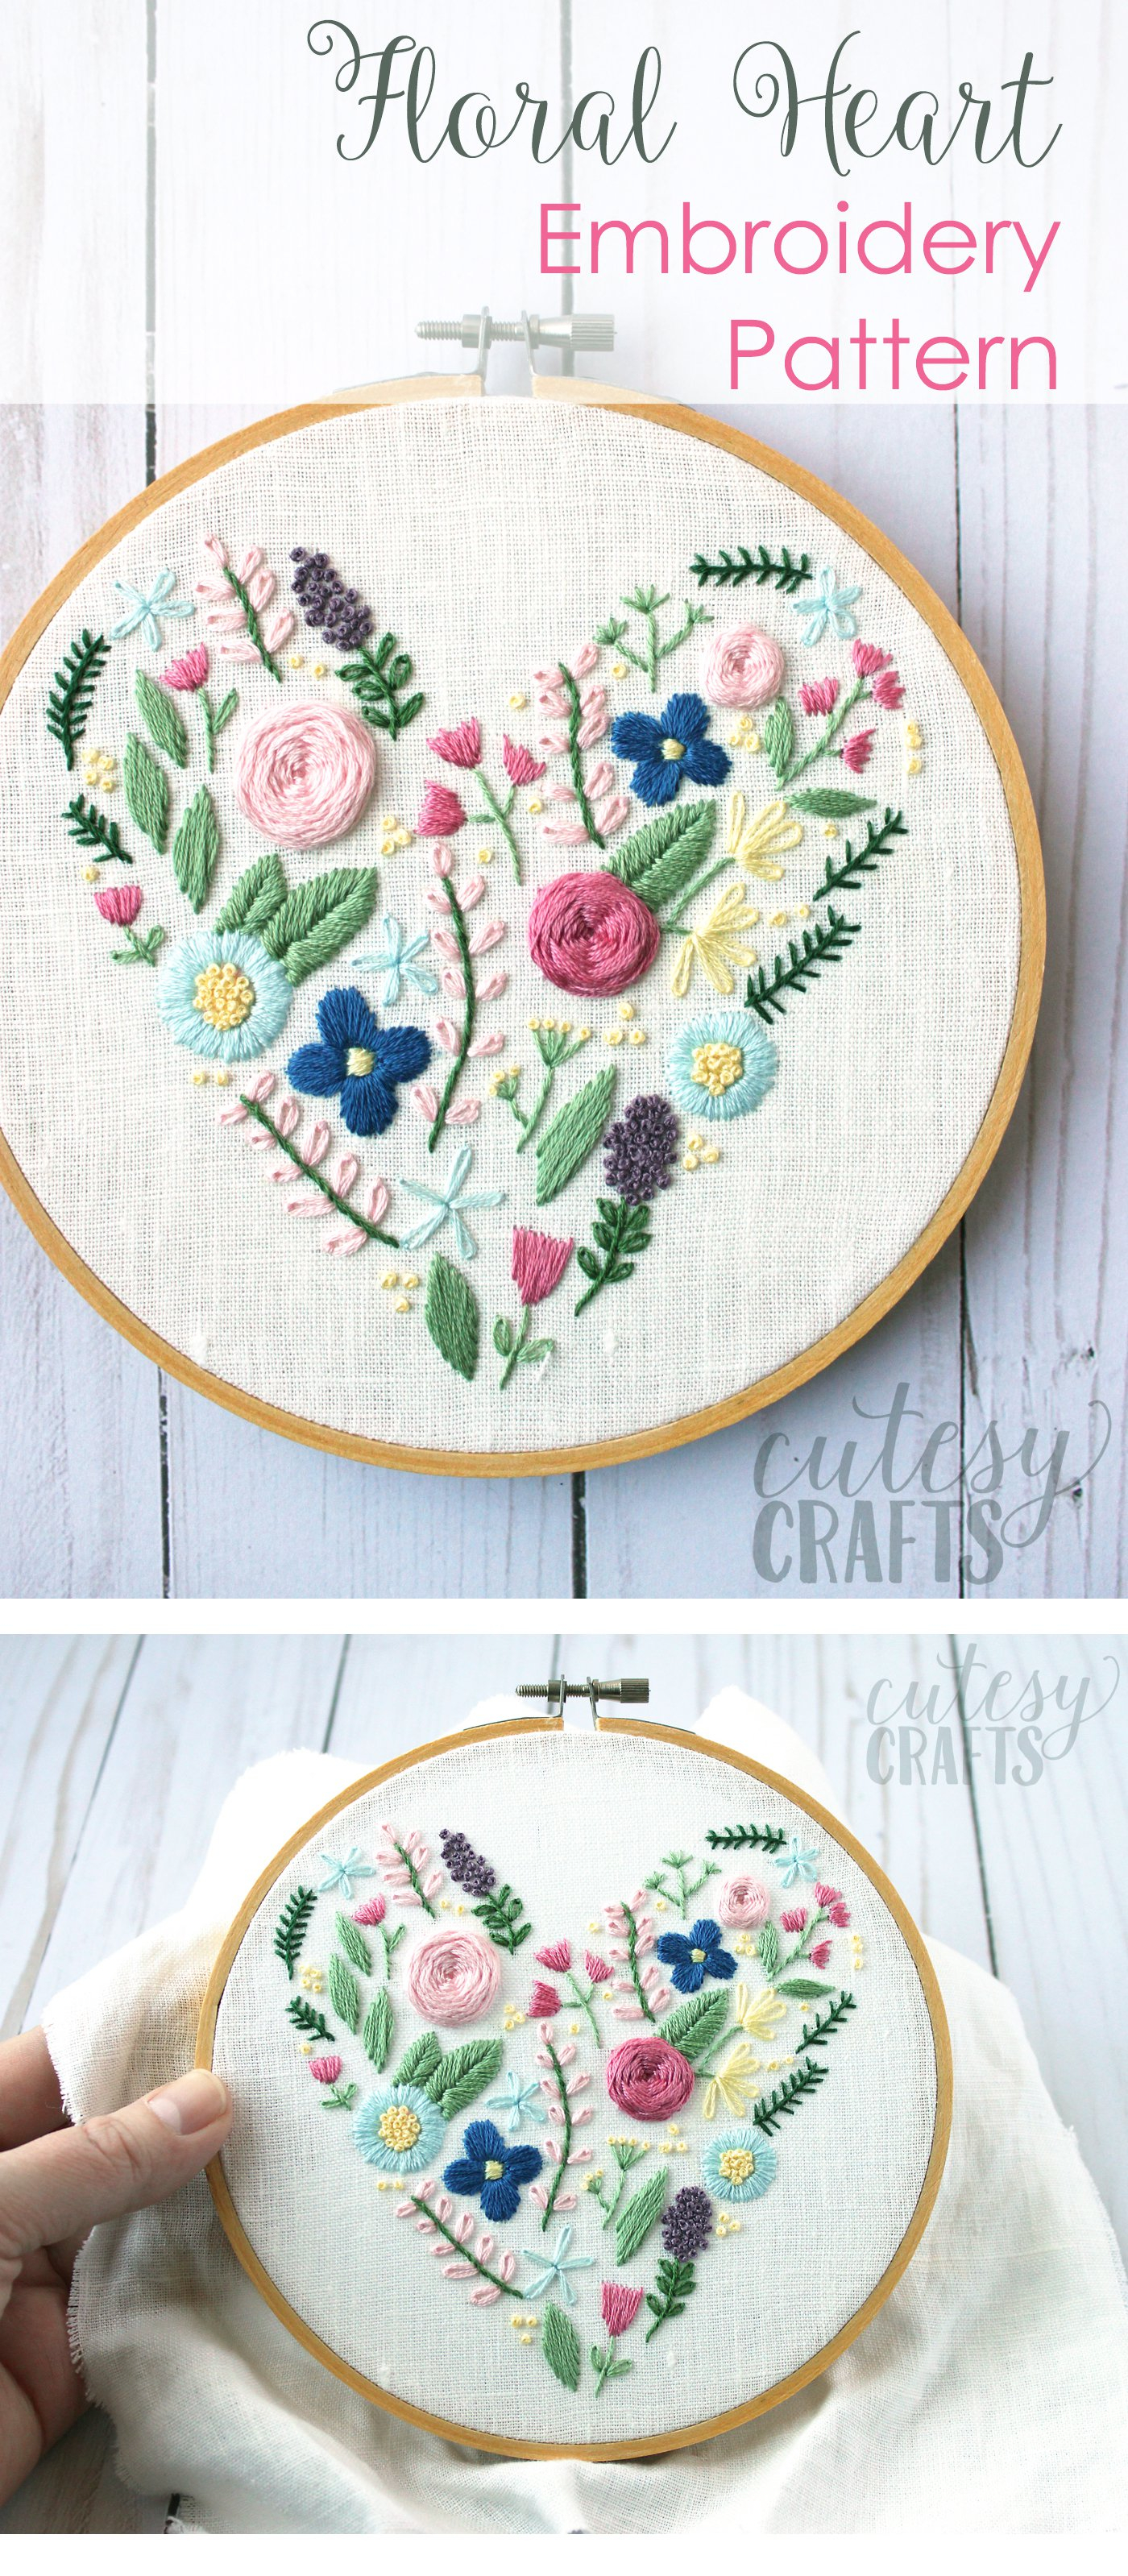 Embroidery For Beginners Free Patterns Floral Heart Hand Embroidery Pattern The Polka Dot Chair